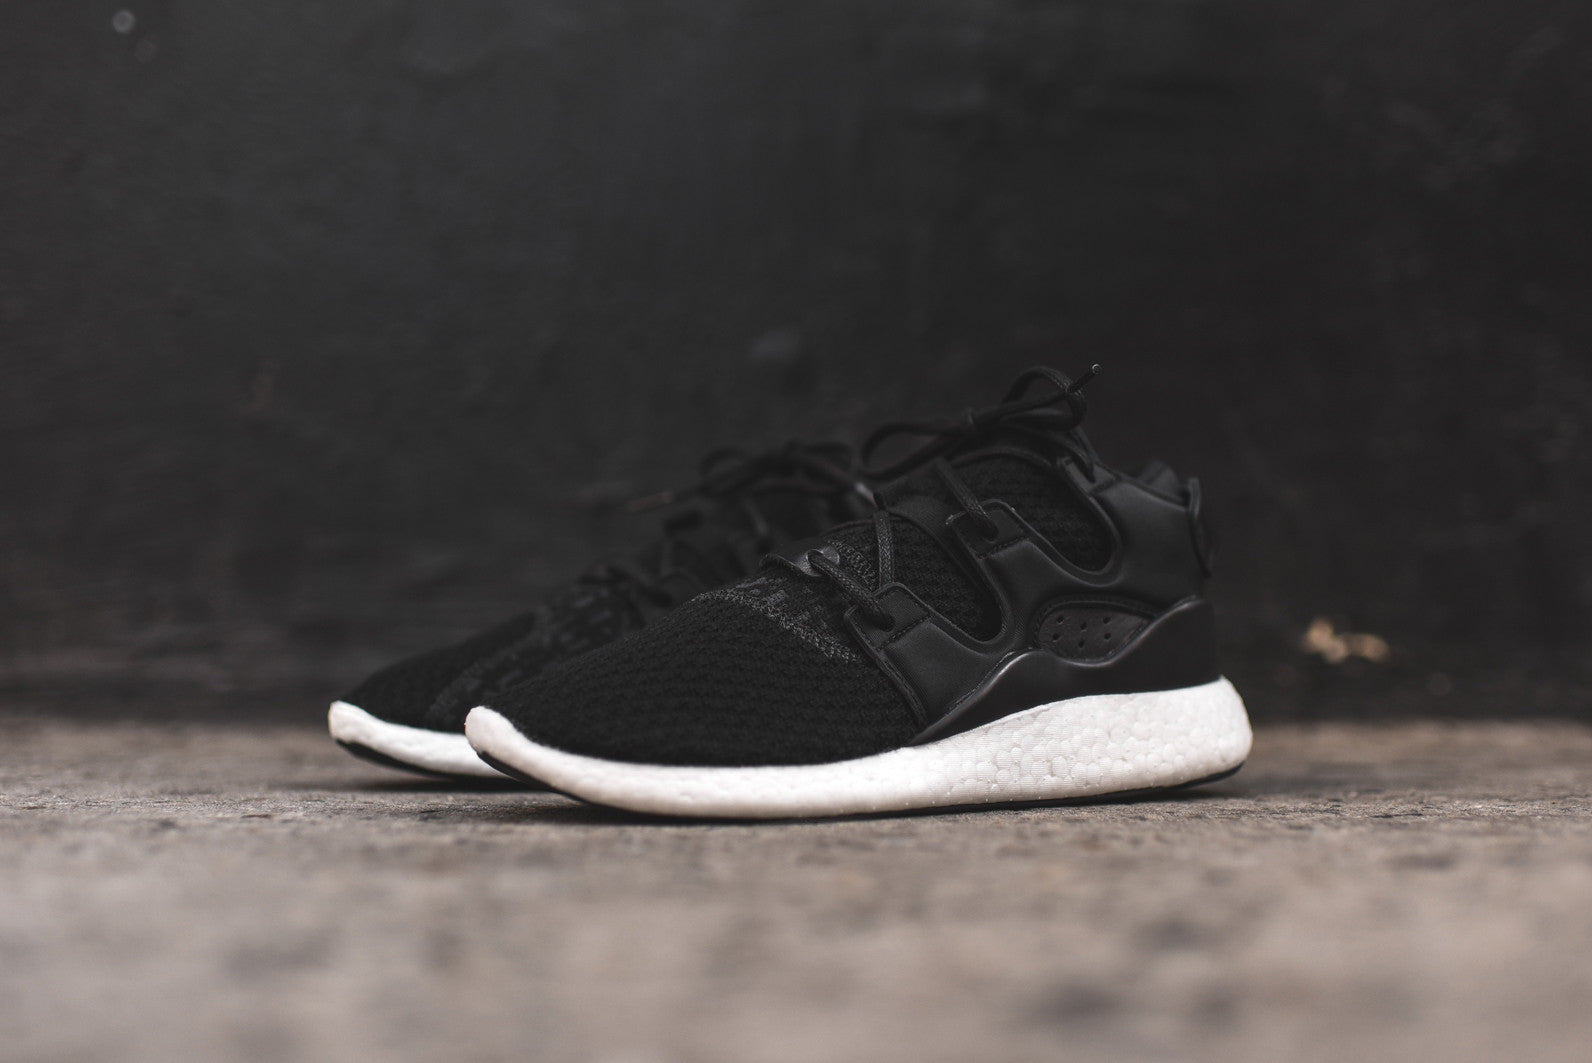 Adidas EQT Support 93/17 Core Black/Milled Leather Pack Review